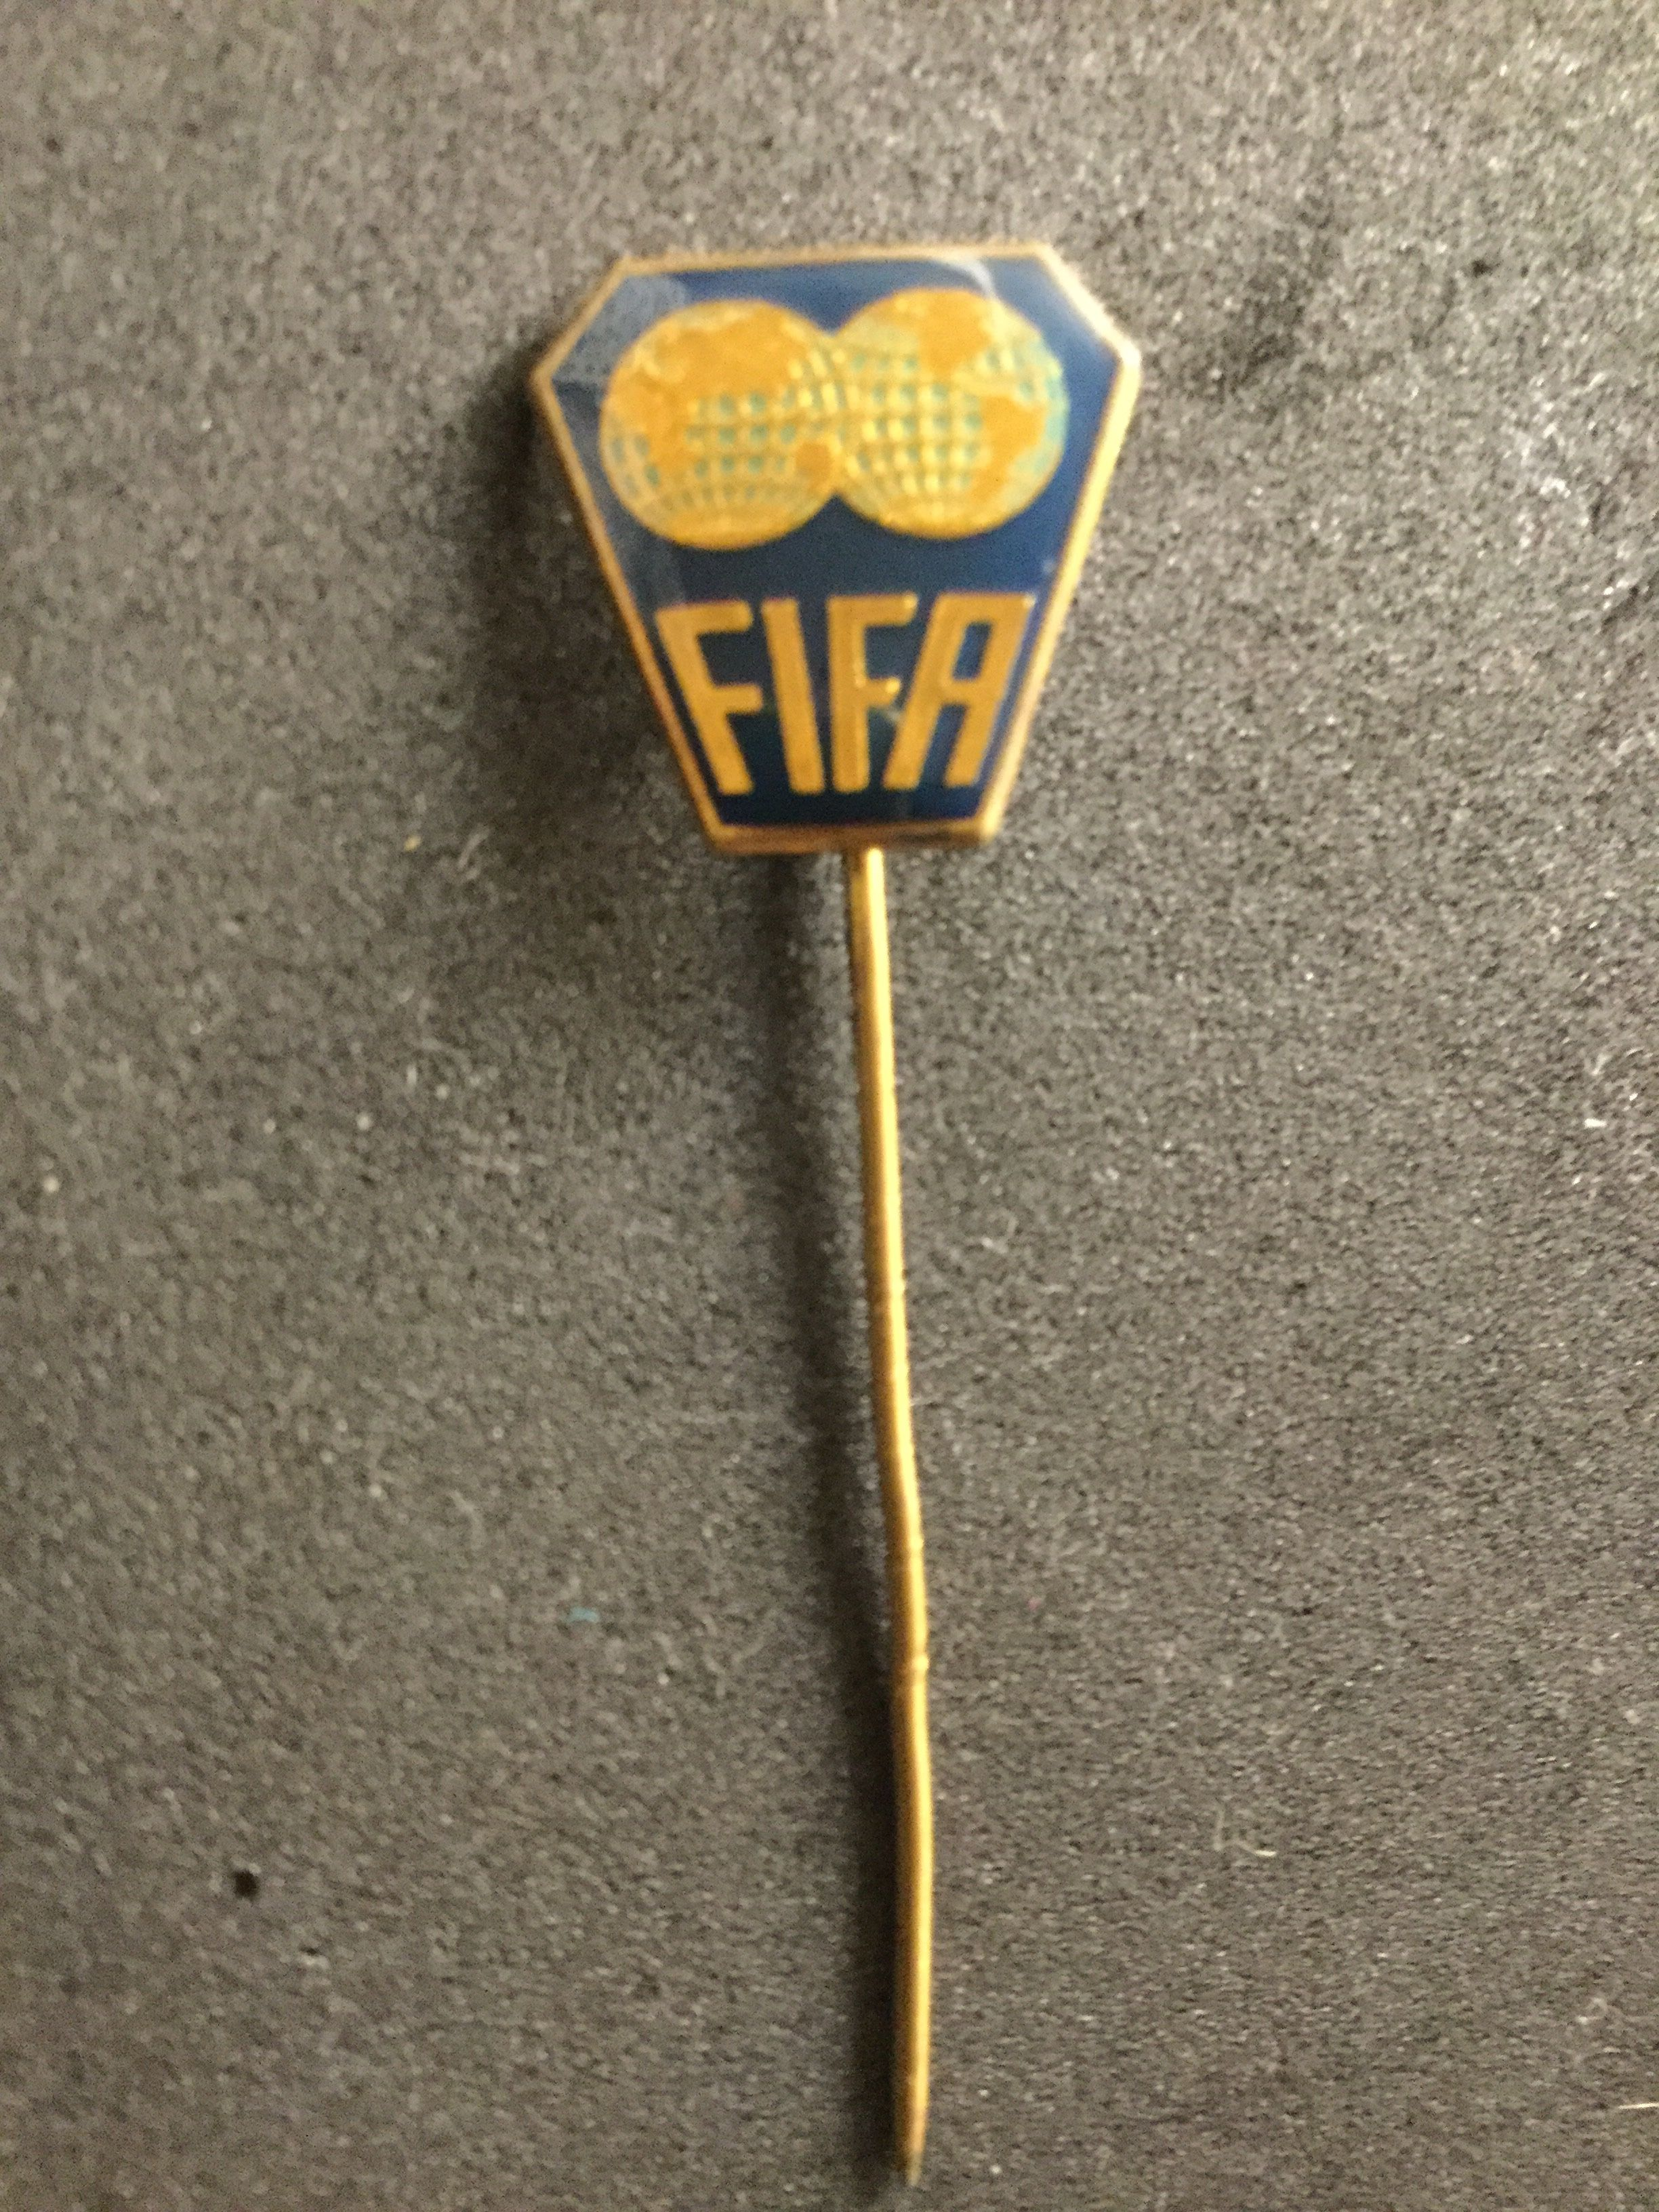 Pin By Mike Mastro On Fifa World Cup Football Soccer Collectors Pin Badges Fifa World Cup Football Soccer Pin Badges